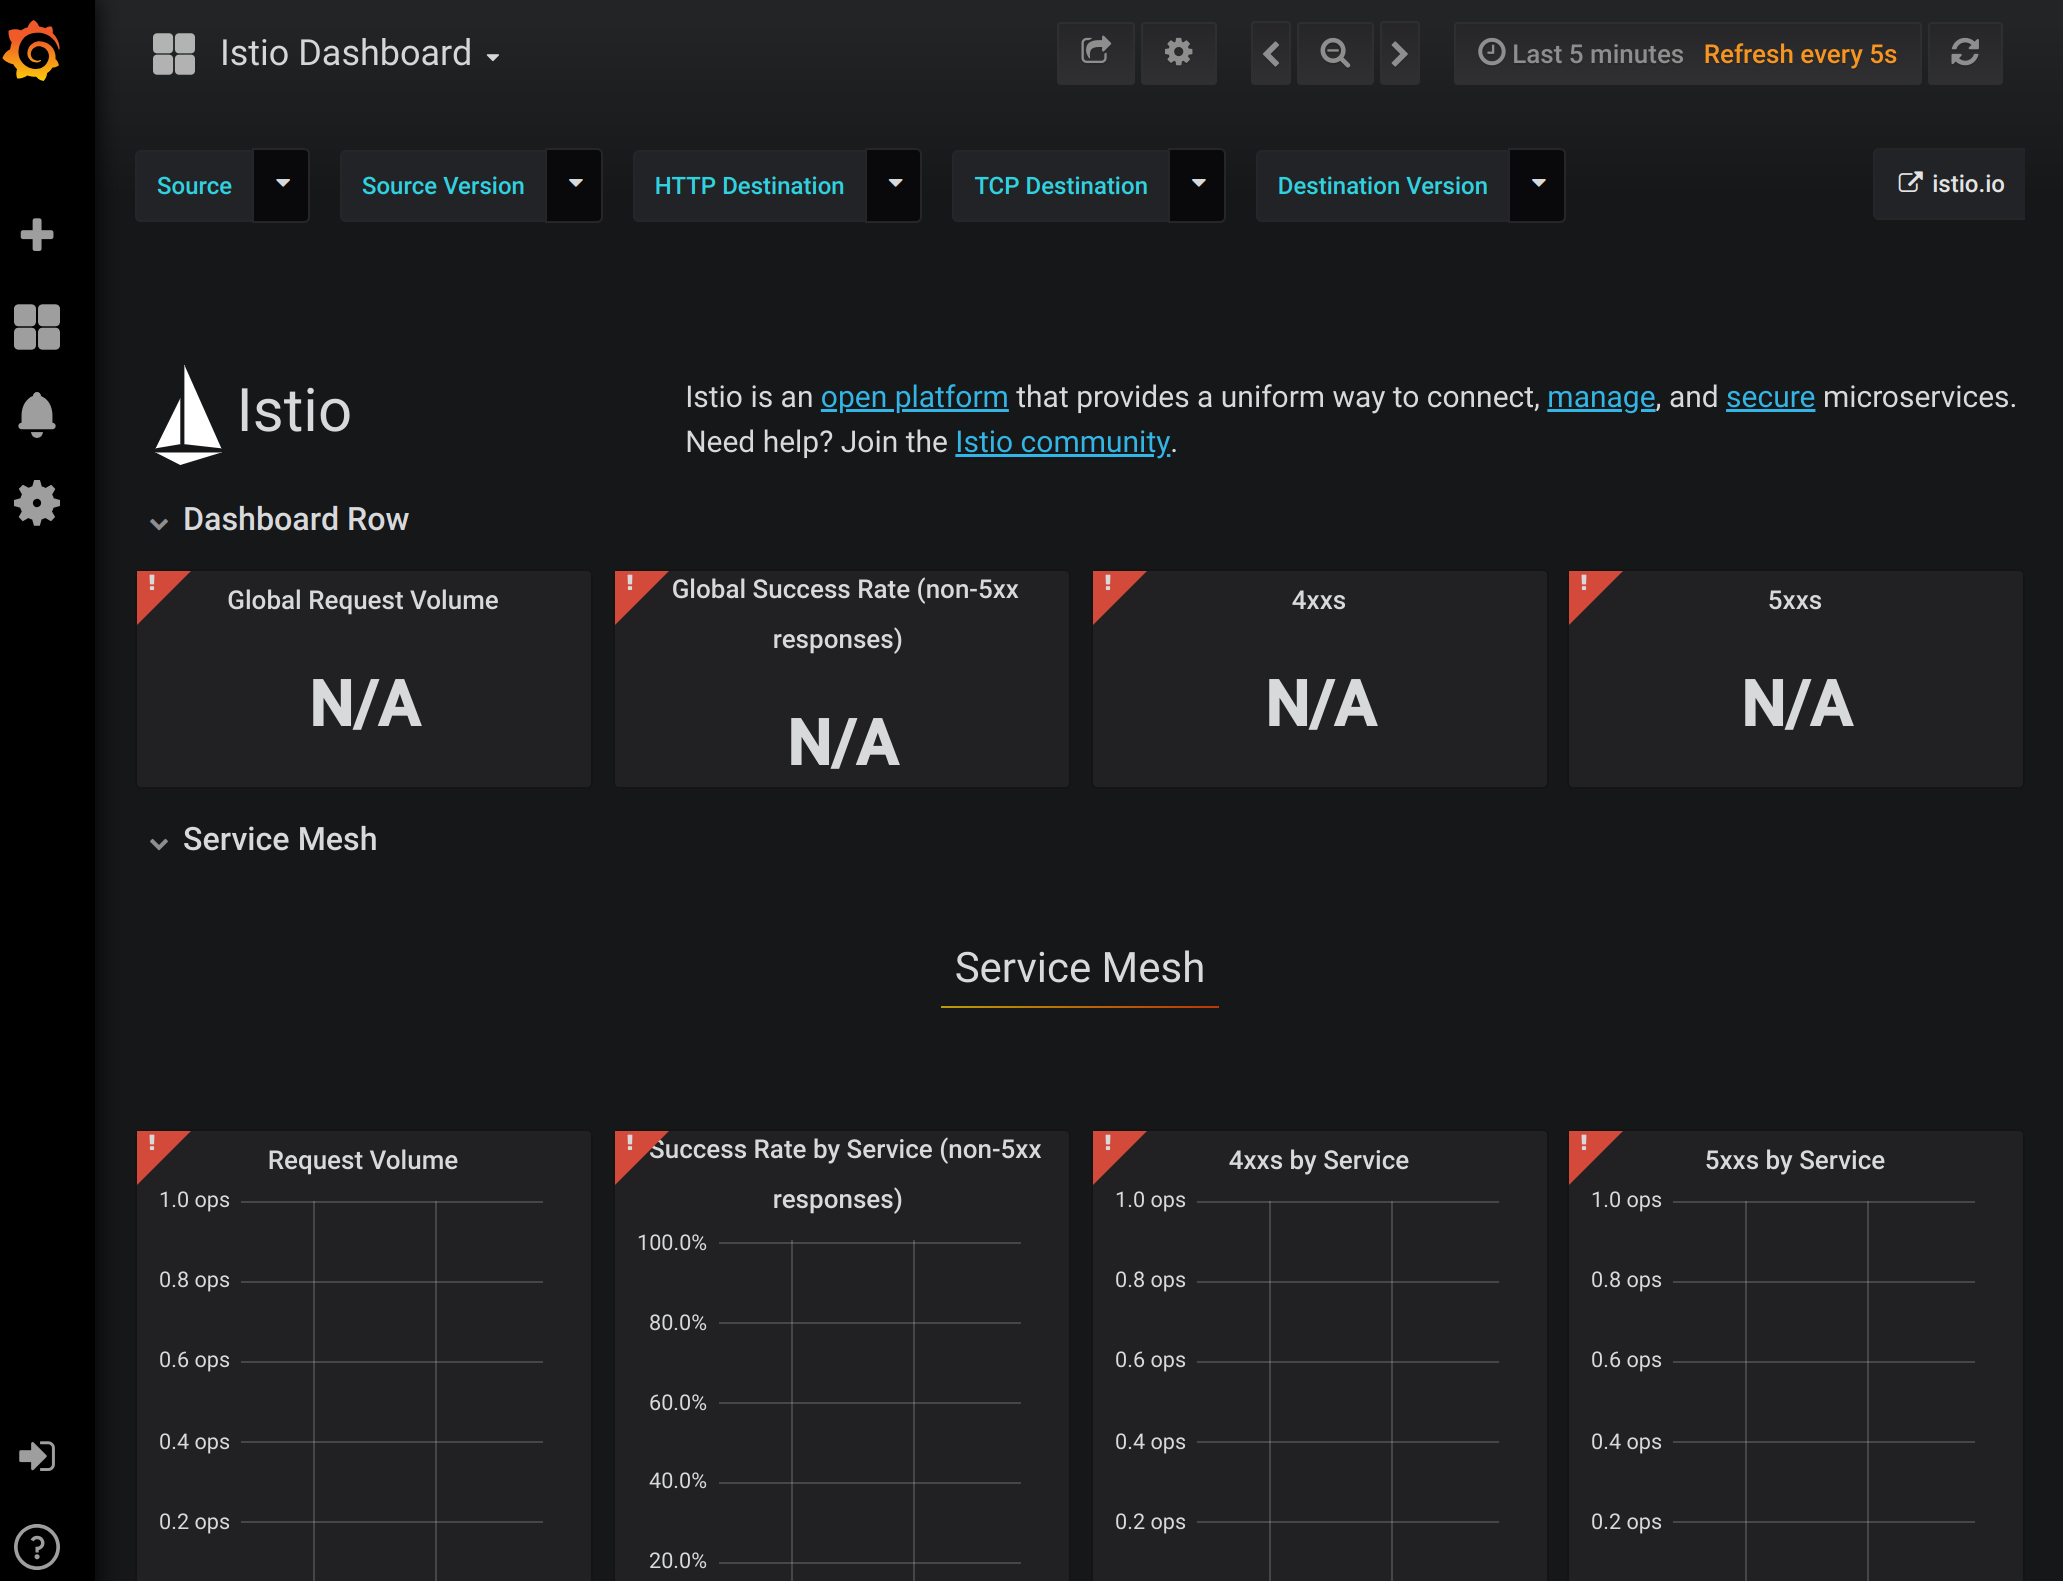 Grafana add-on on fresh Bookinfo install has no data to